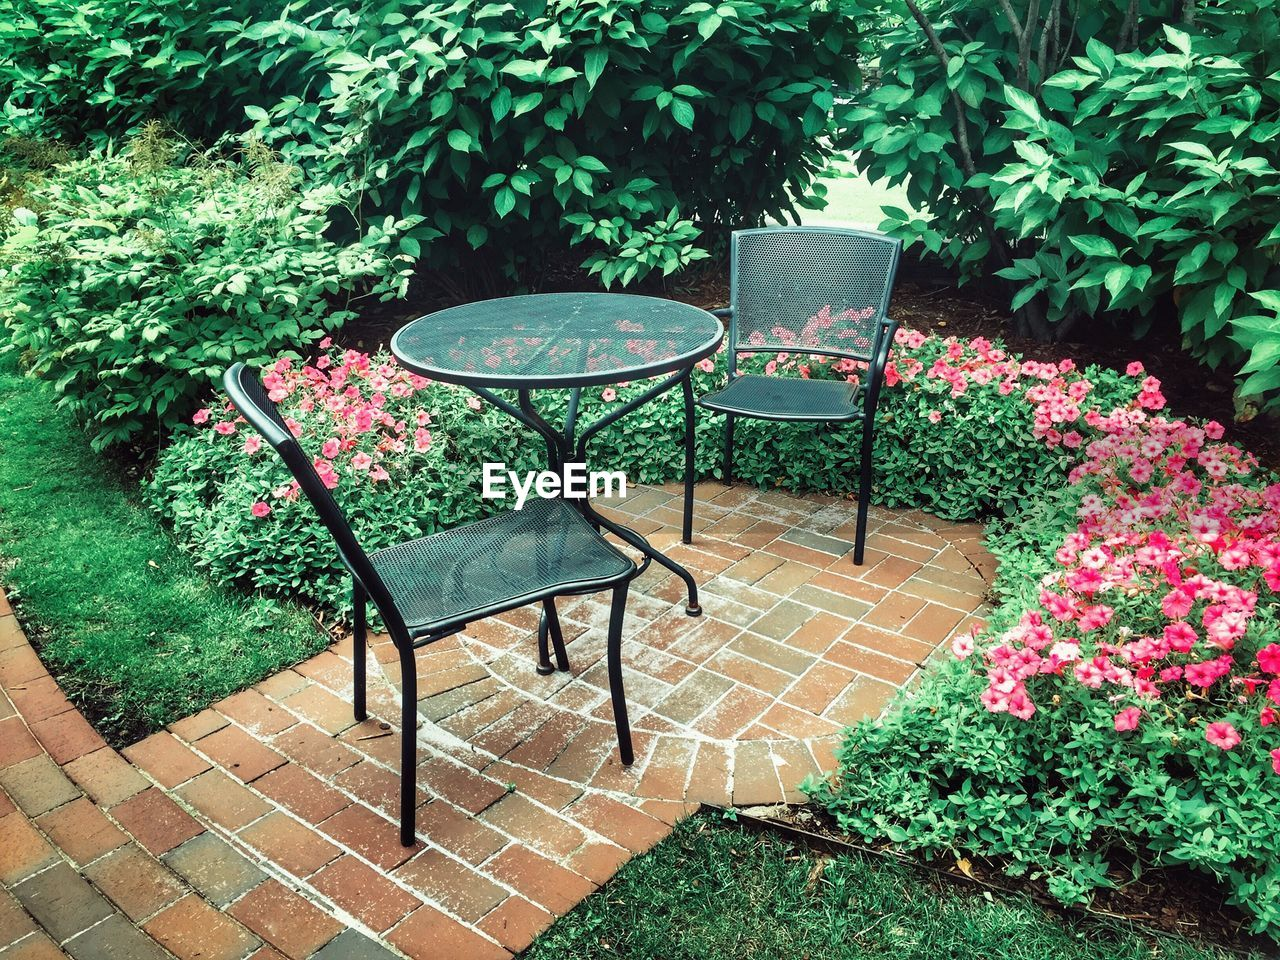 EMPTY CHAIR AND TABLE IN YARD